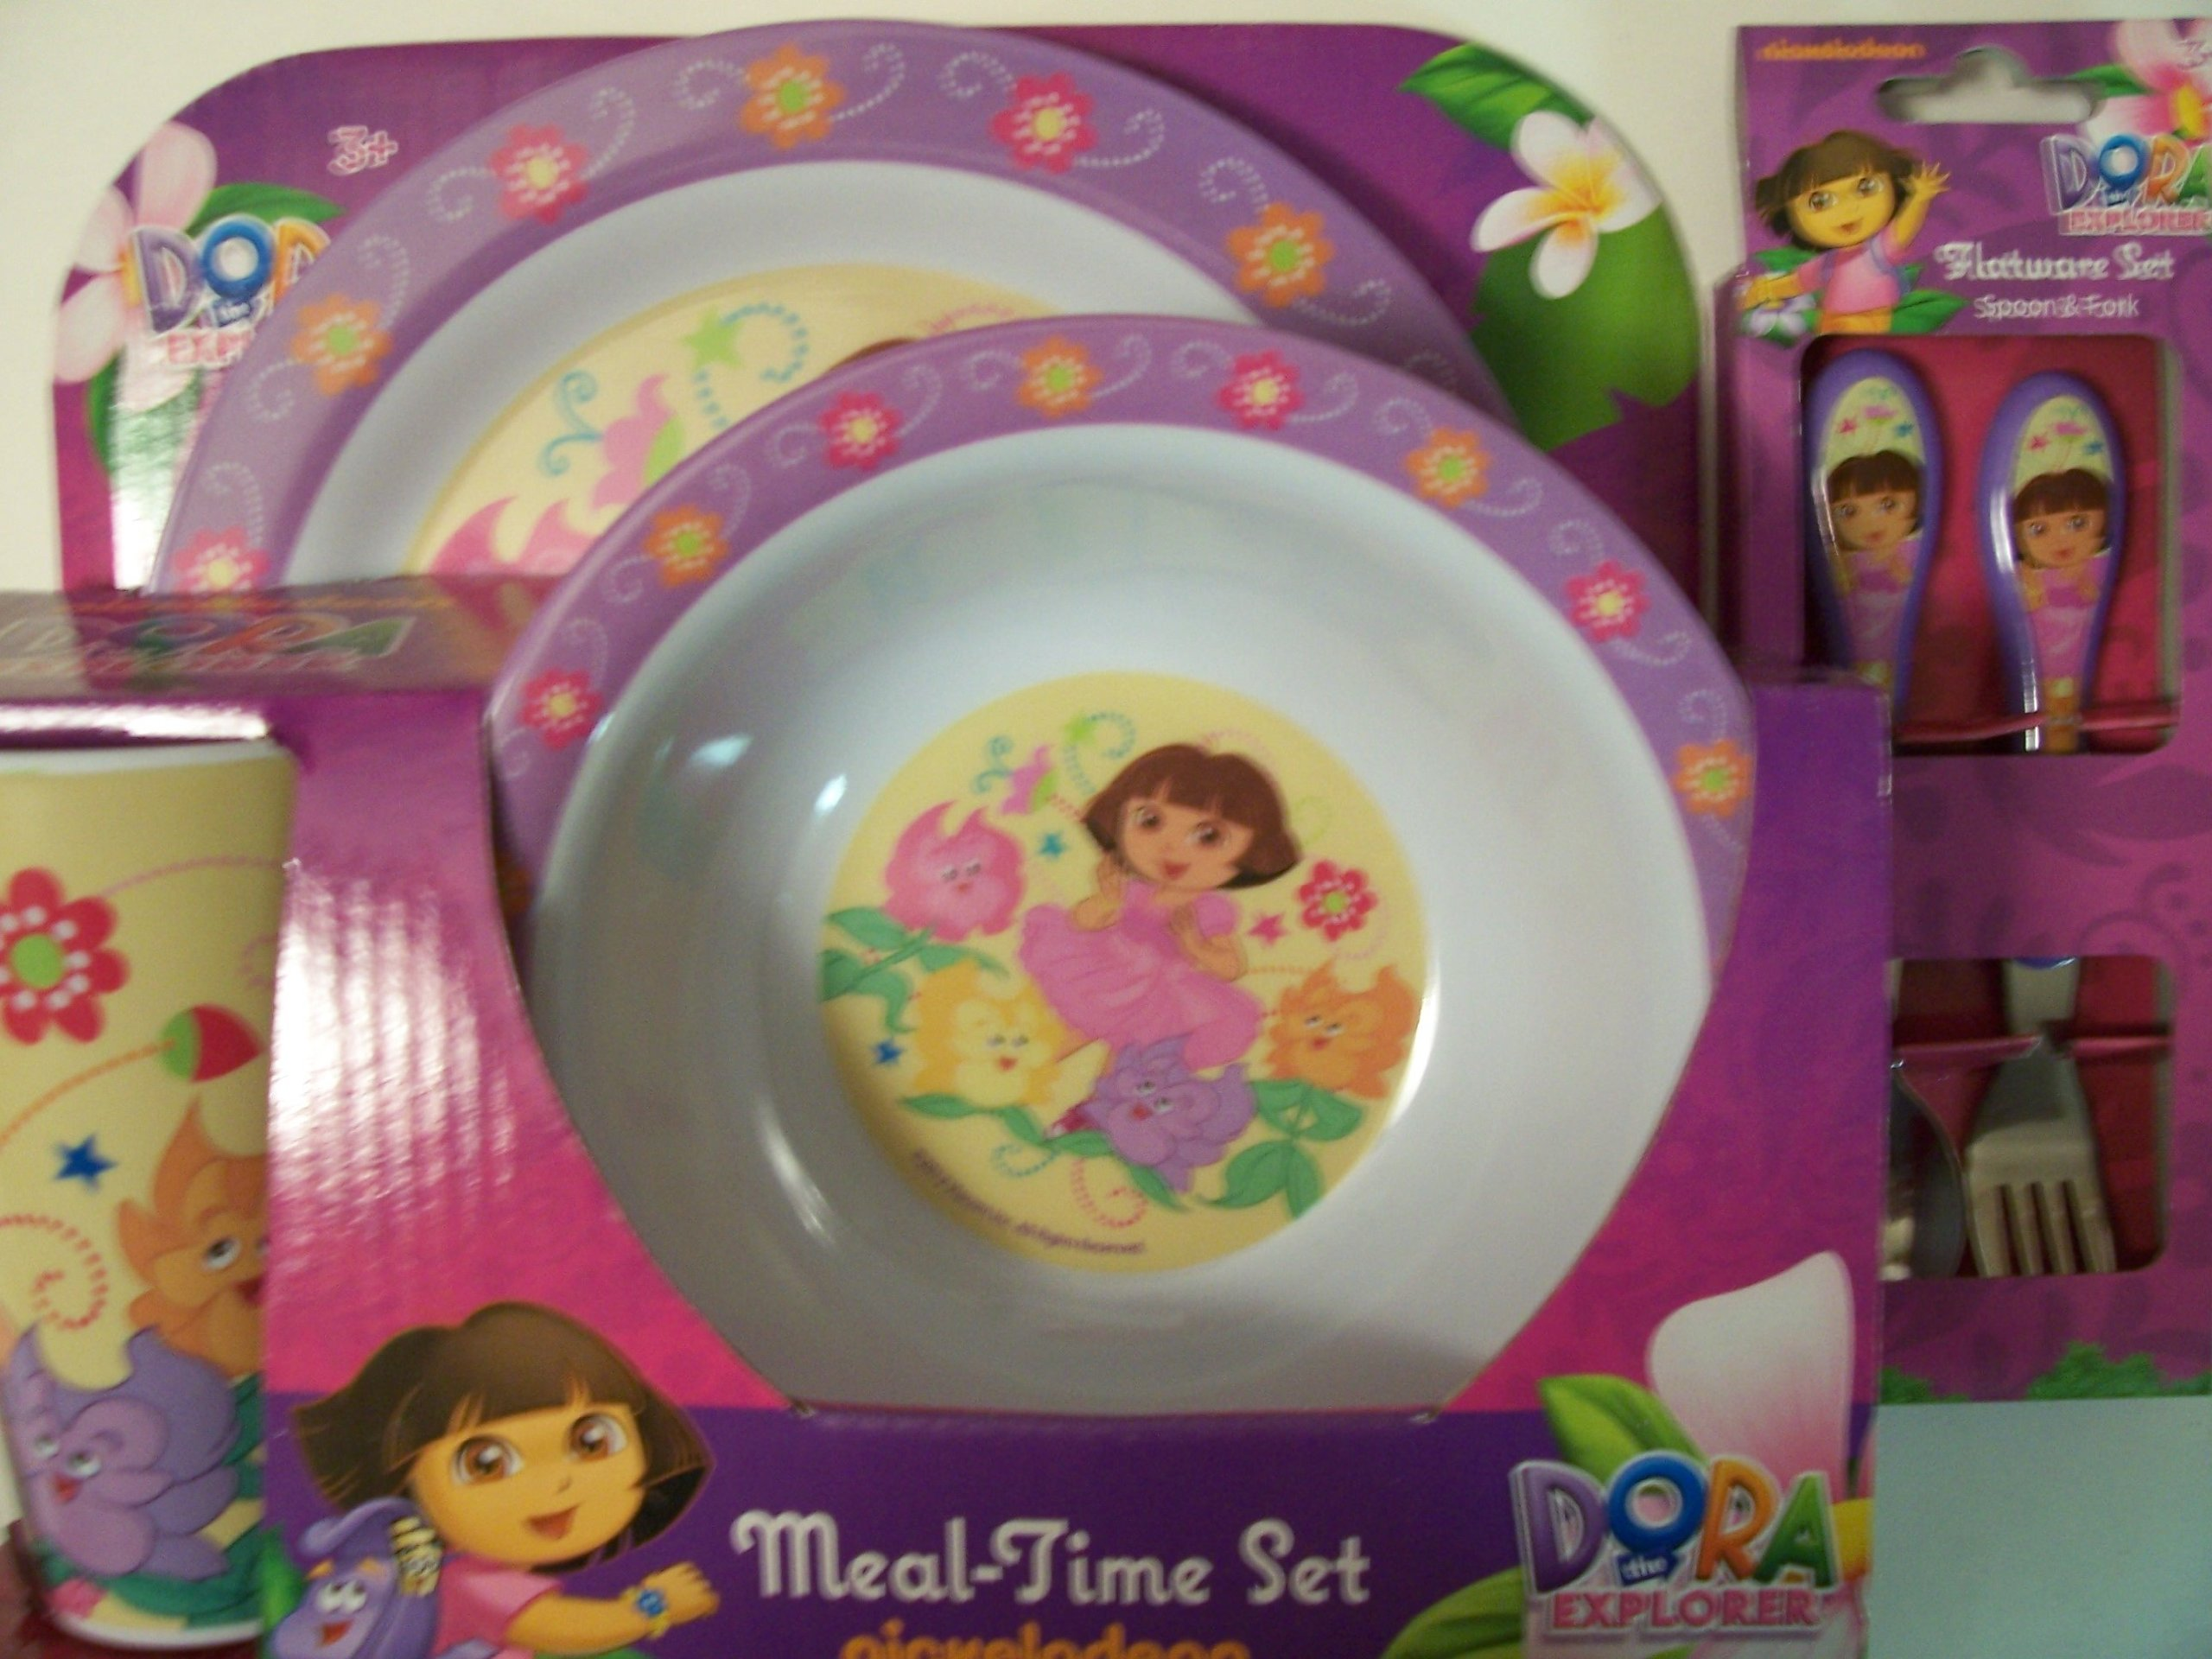 Dora the Explorer 5 Piece KCARE Dining Set ~ Plate, Bowl, Cup, Fork, Spoon (Dora with Talking Flowers)